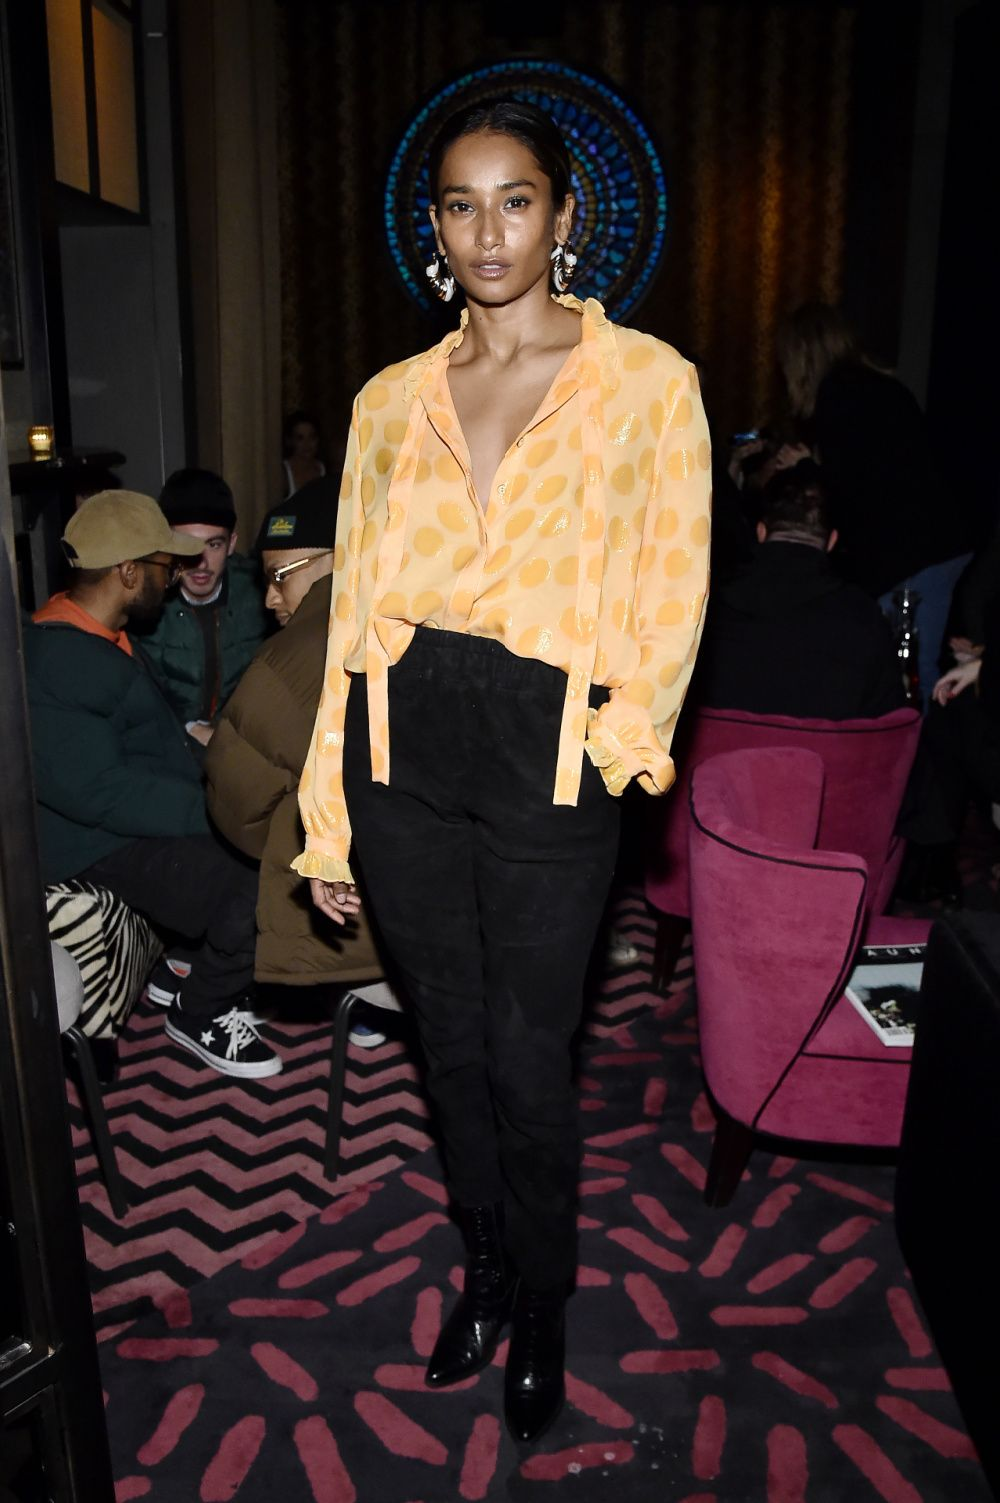 Nidhi Sunil at The Butterfly at Sixty Soho on February 08, 2020 in New York City. (Photo by Steven Ferdman/Getty Images)